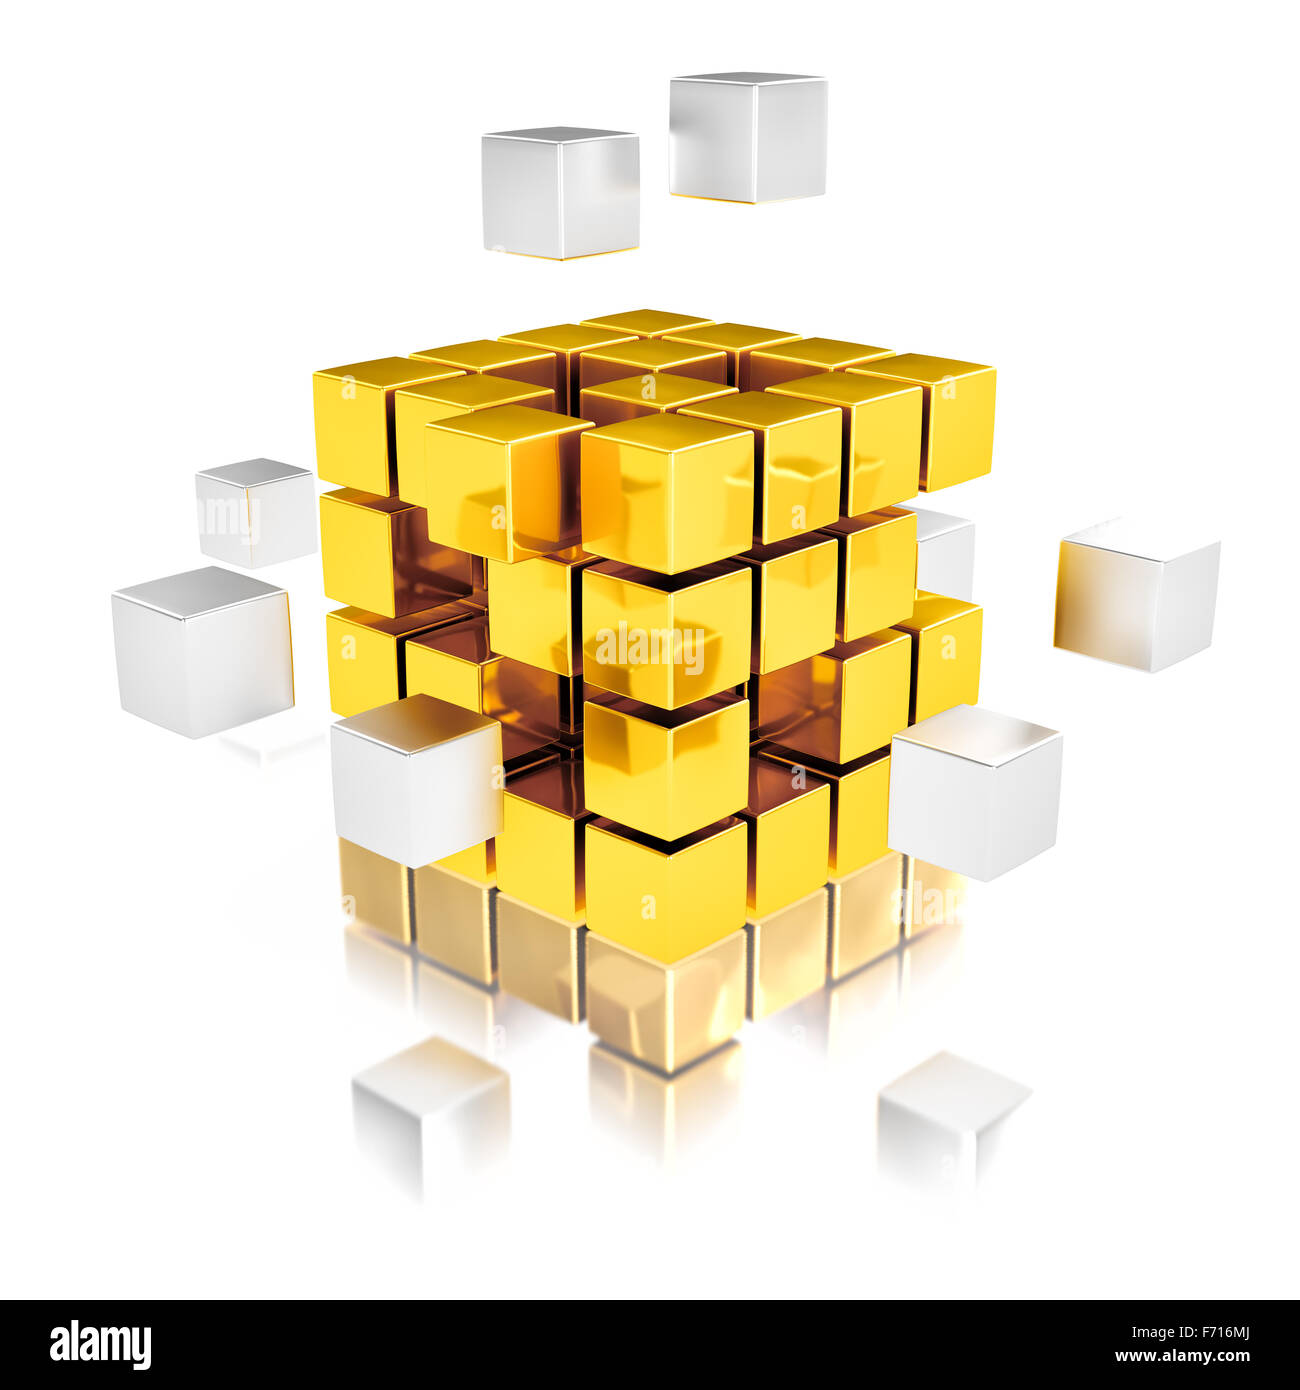 Teamwork abstrace concept - Stock Image